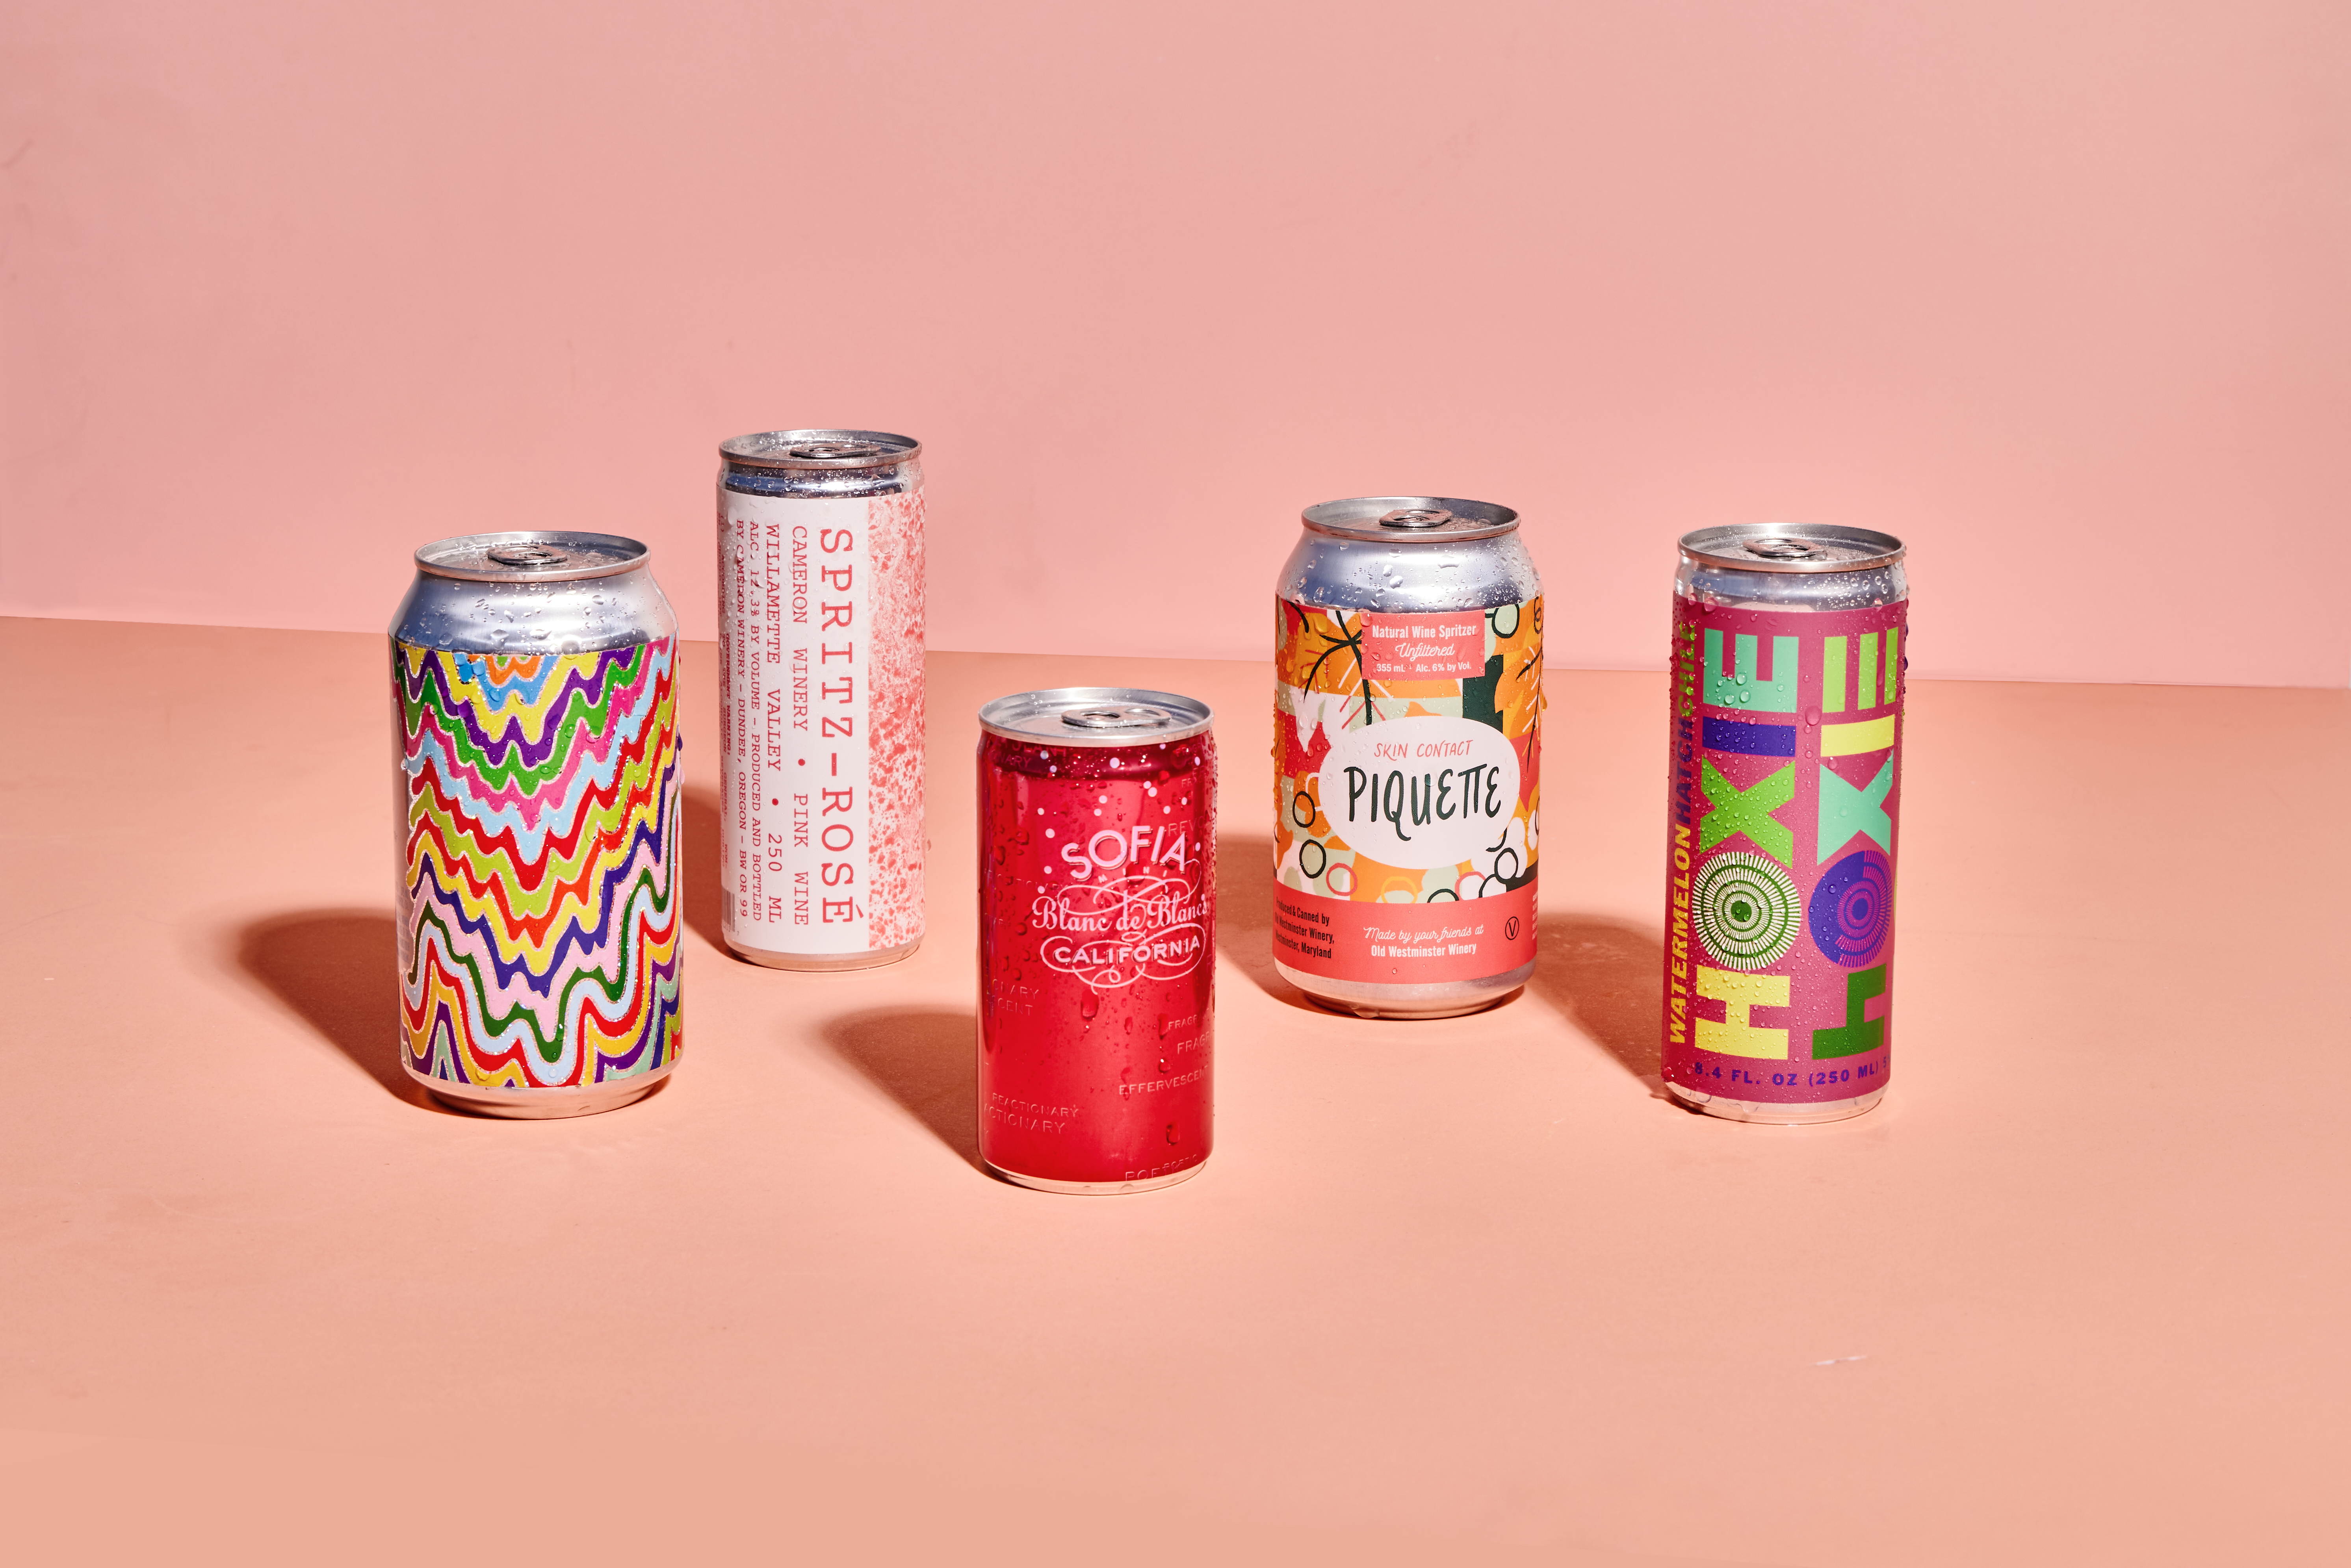 Five colorful cans on a pink background.